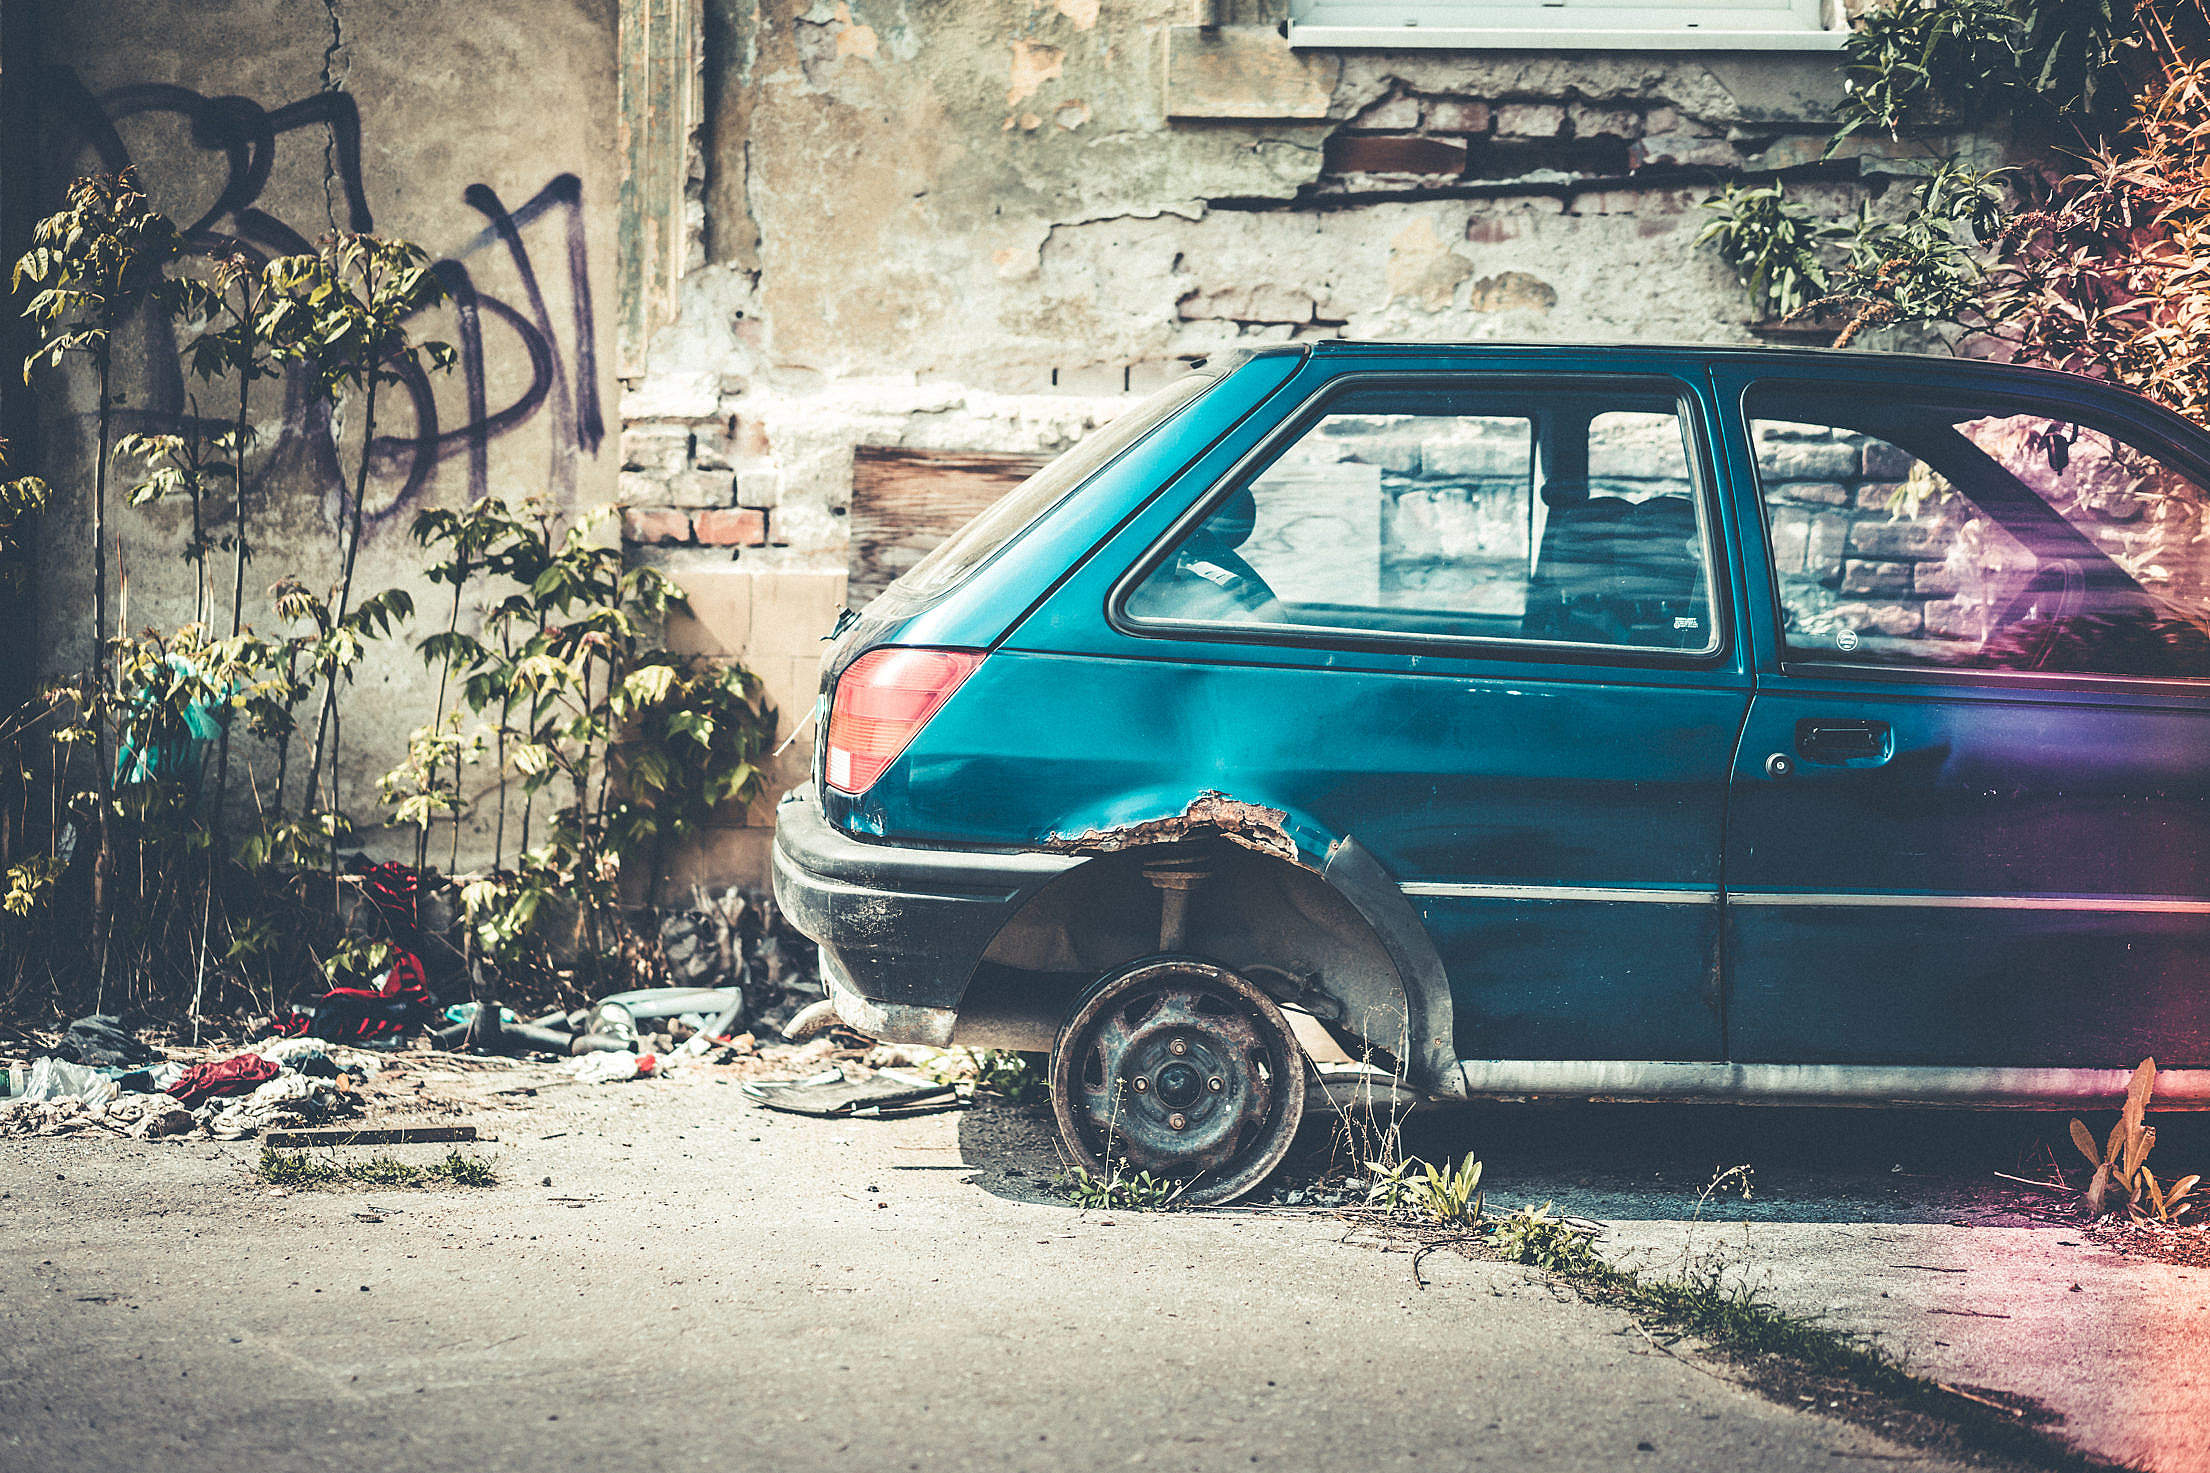 Old Broken and Abandoned Car Free Stock Photo